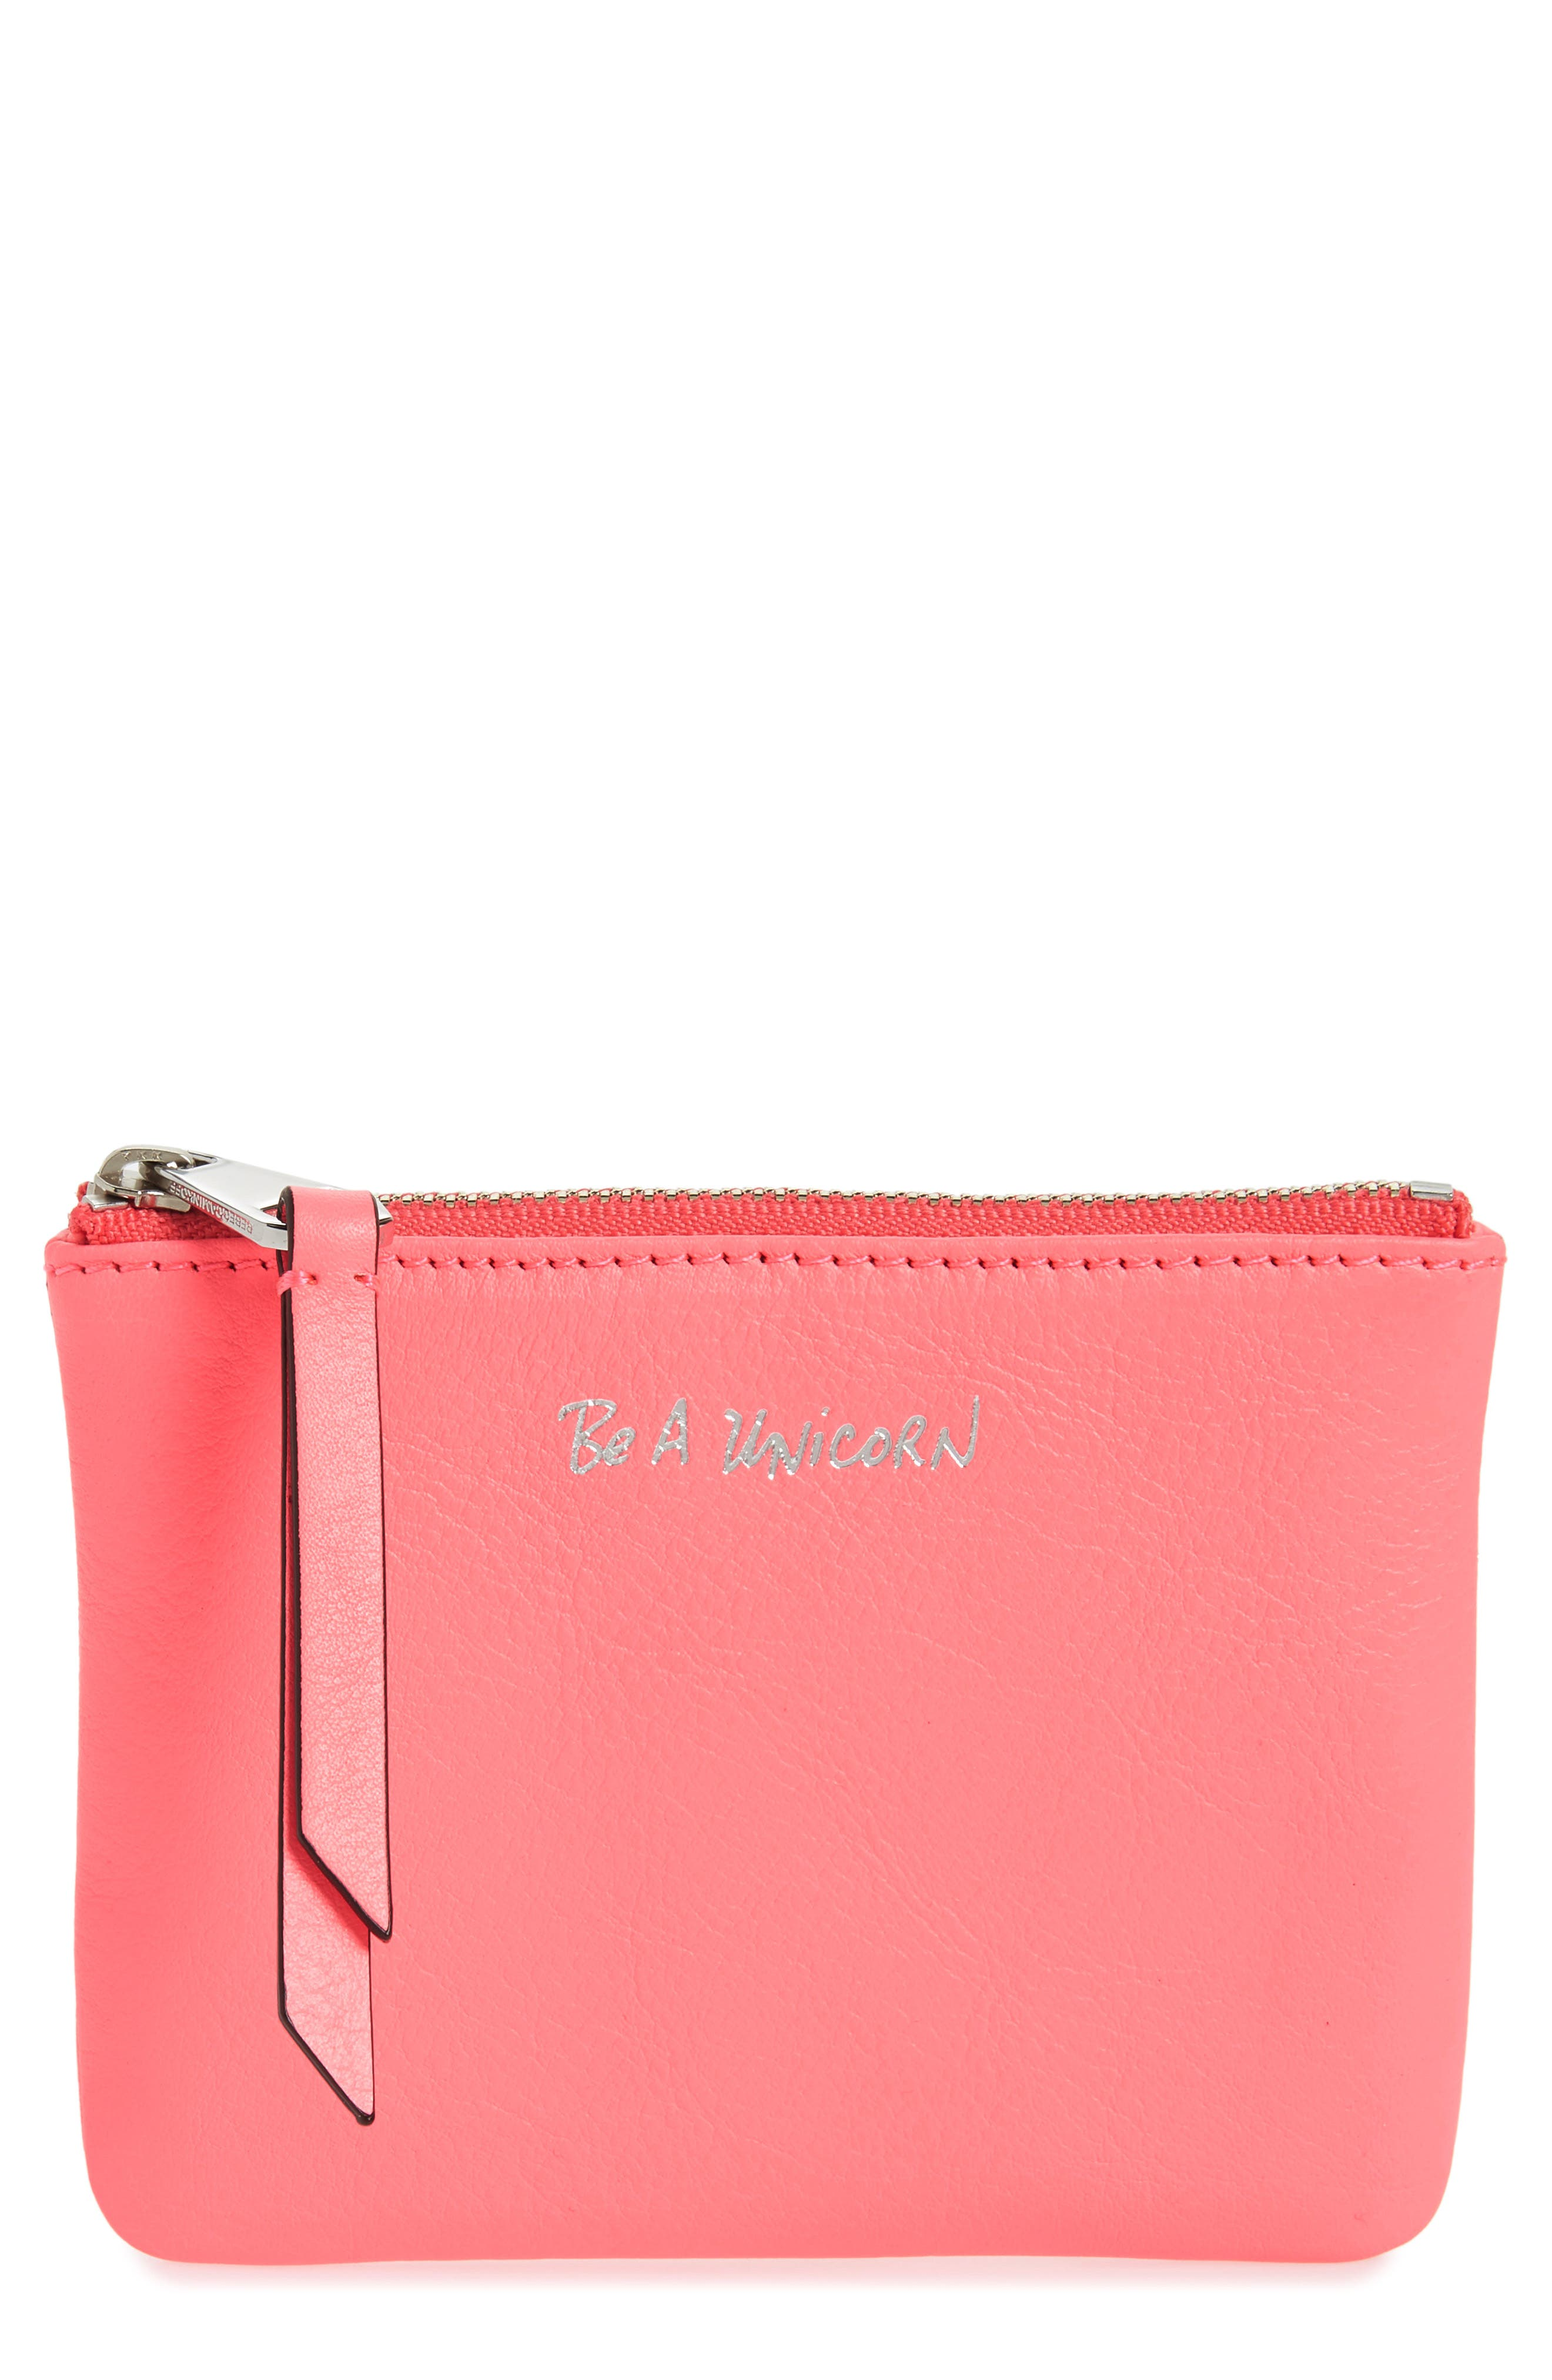 Betty - Be a Unicorn Leather Pouch,                         Main,                         color,